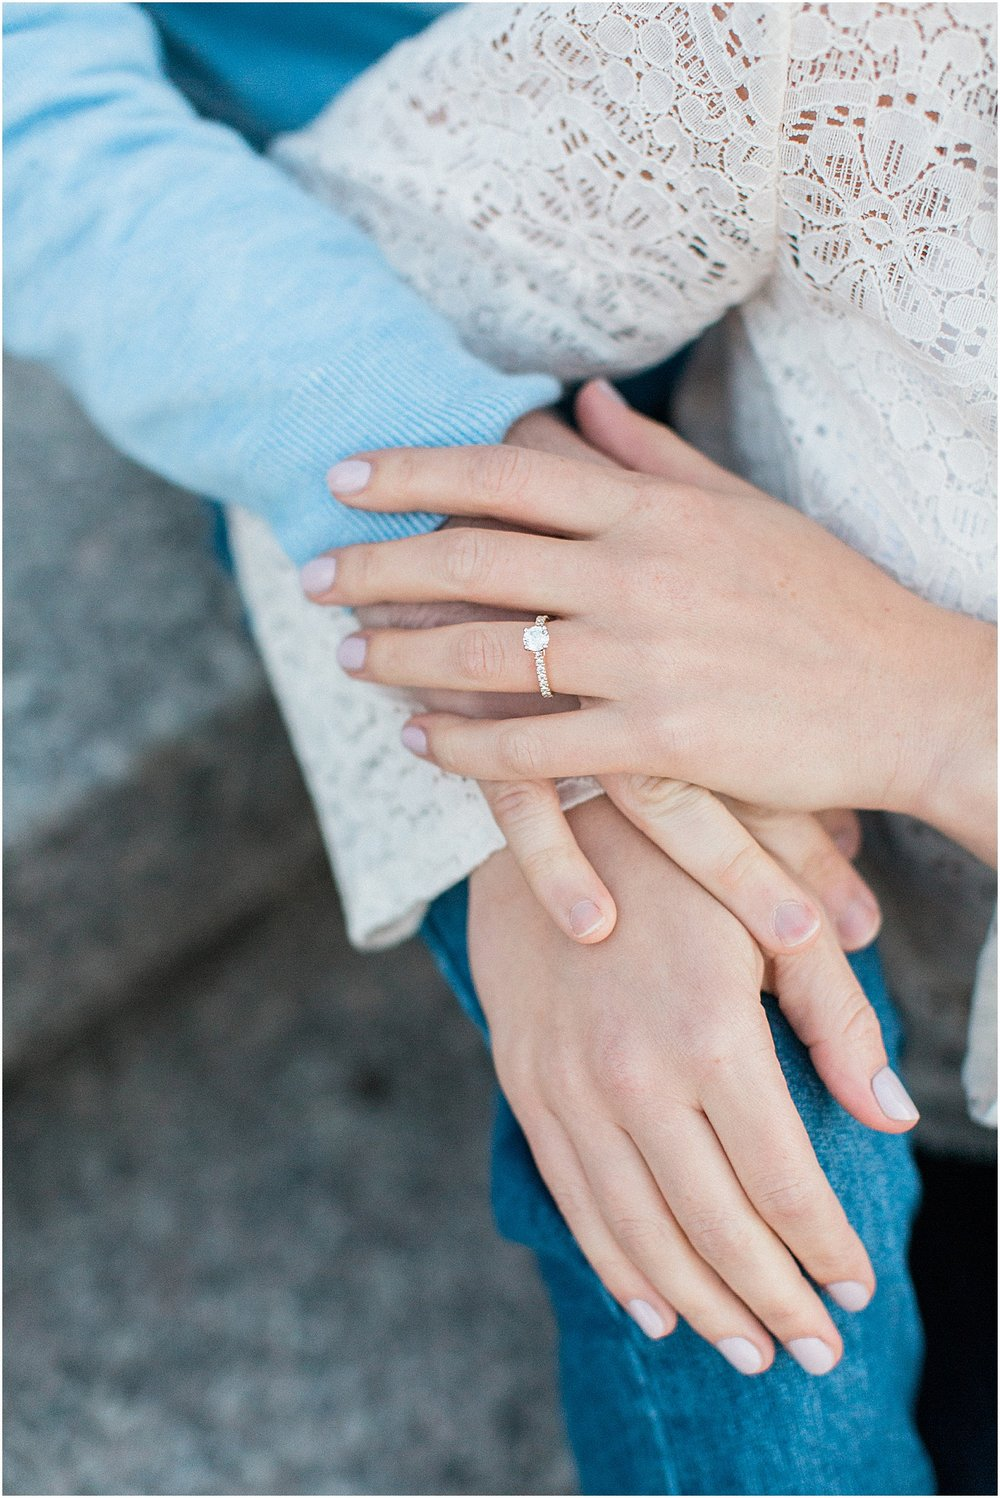 jenny_jared_beacon_hill_acorn_street_seaport_engagement_fall_cape_cod_boston_wedding_photographer_meredith_jane_photography_photo_1543.jpg